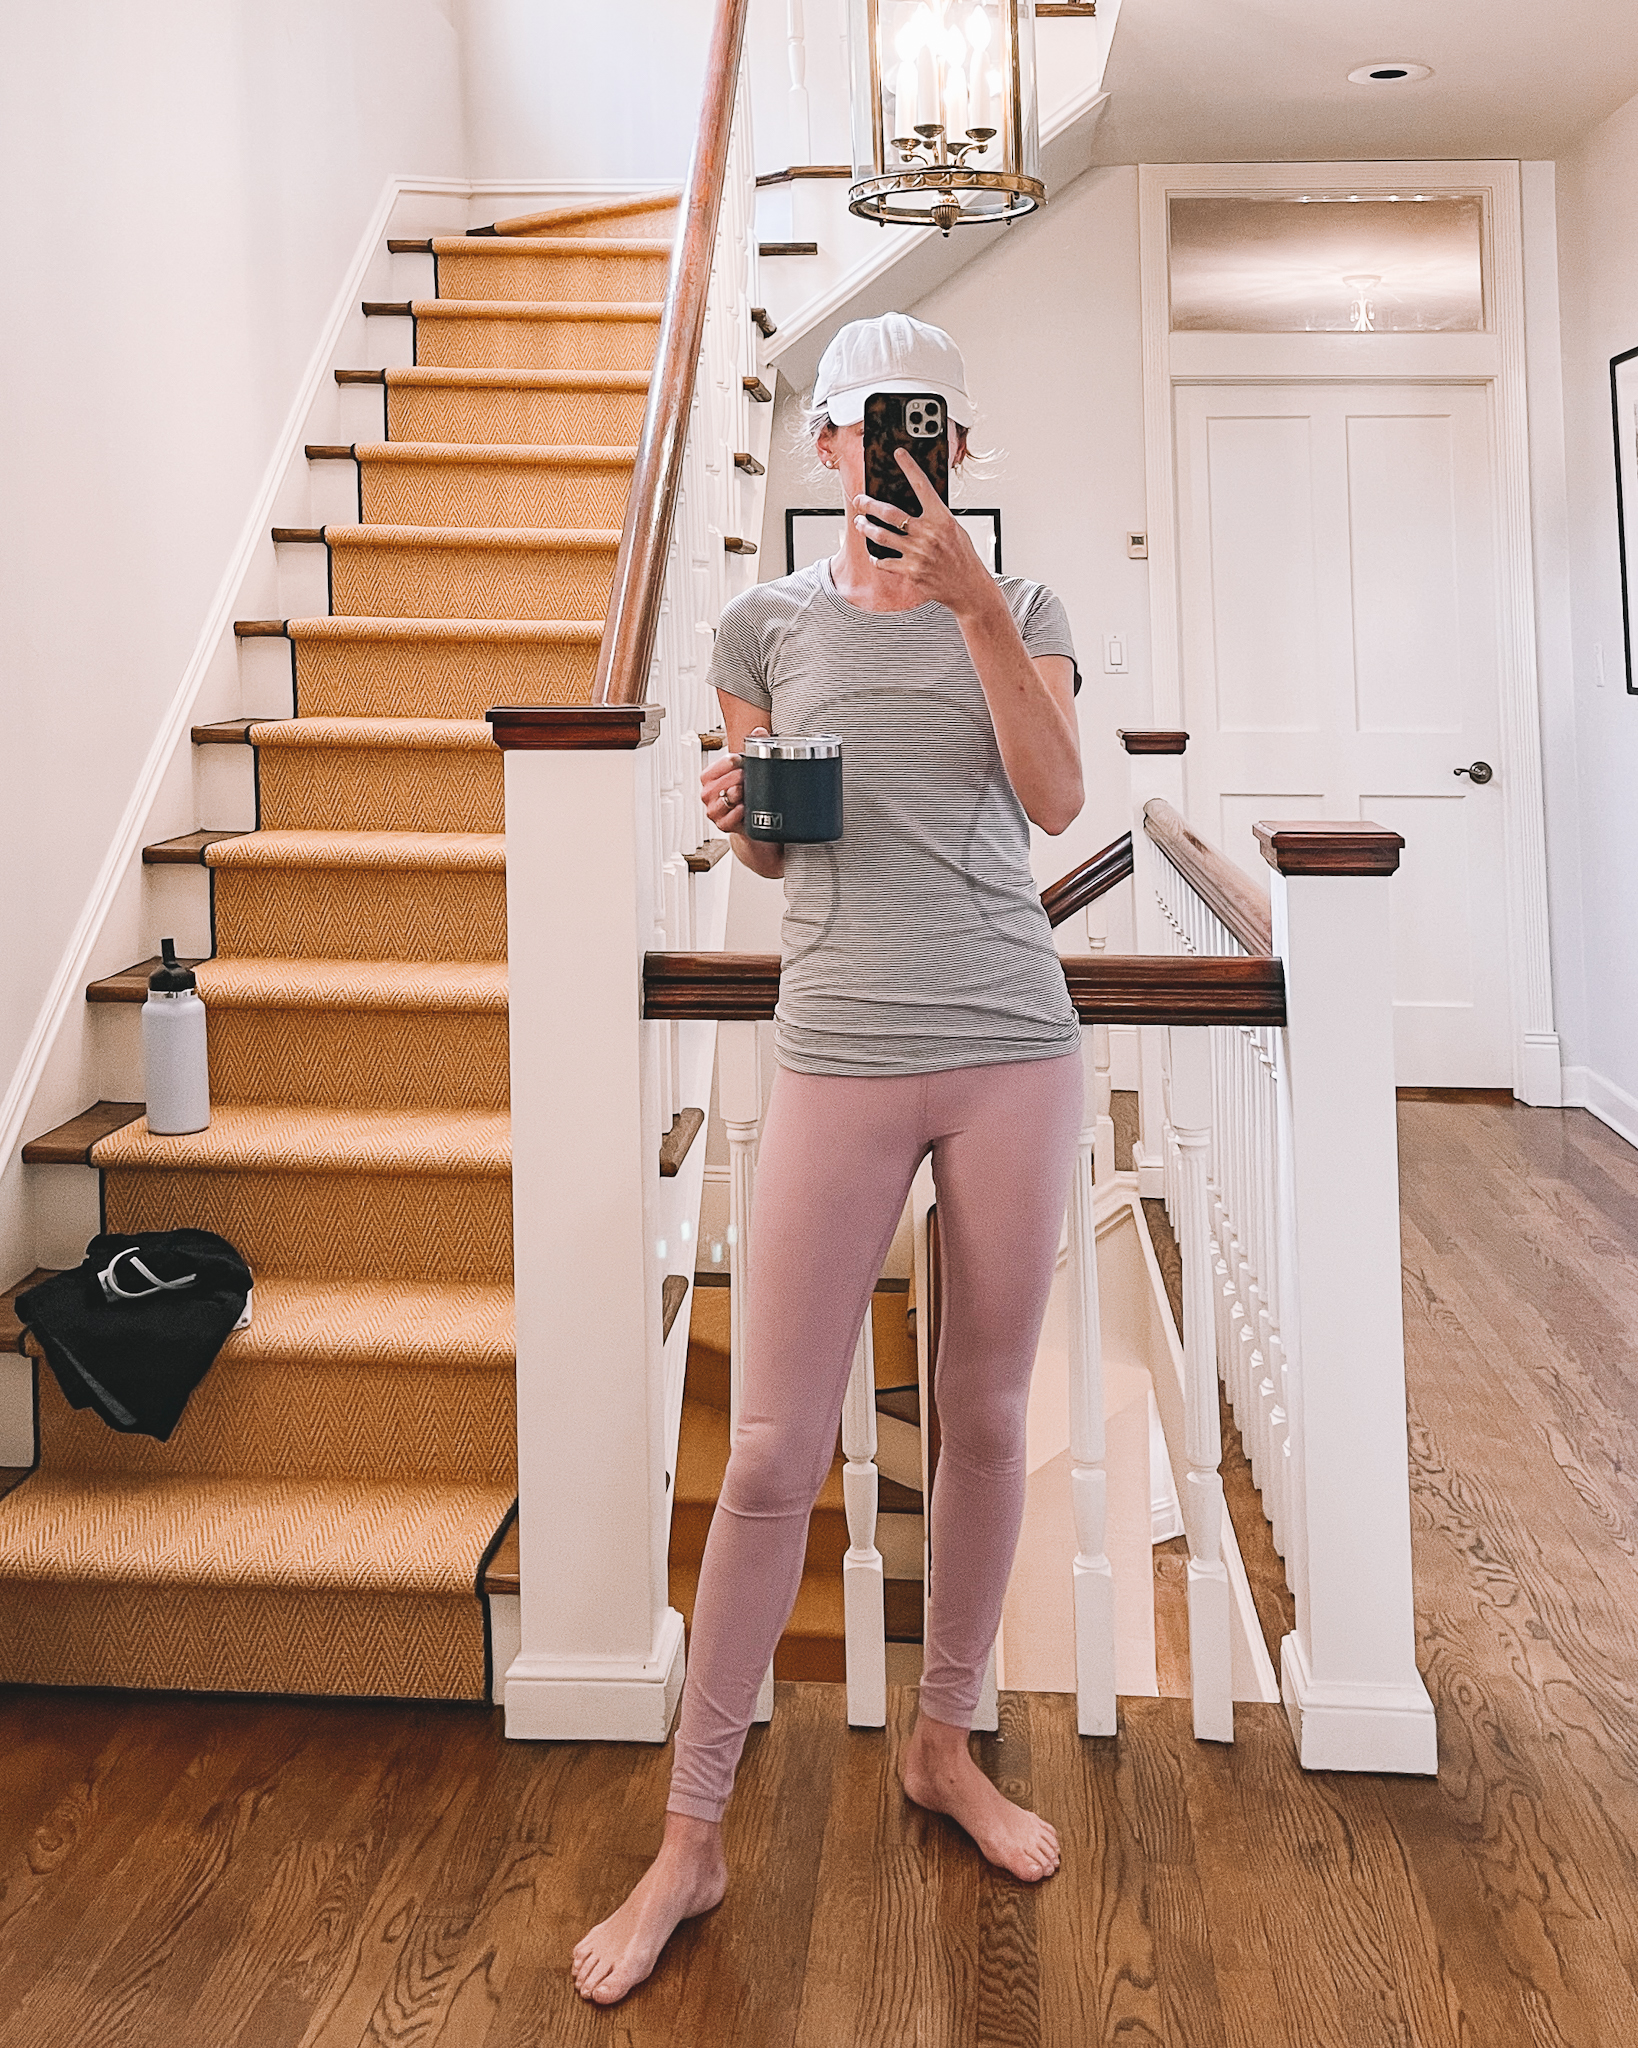 Hydroflask Water Bottle   What I Wore 9/7